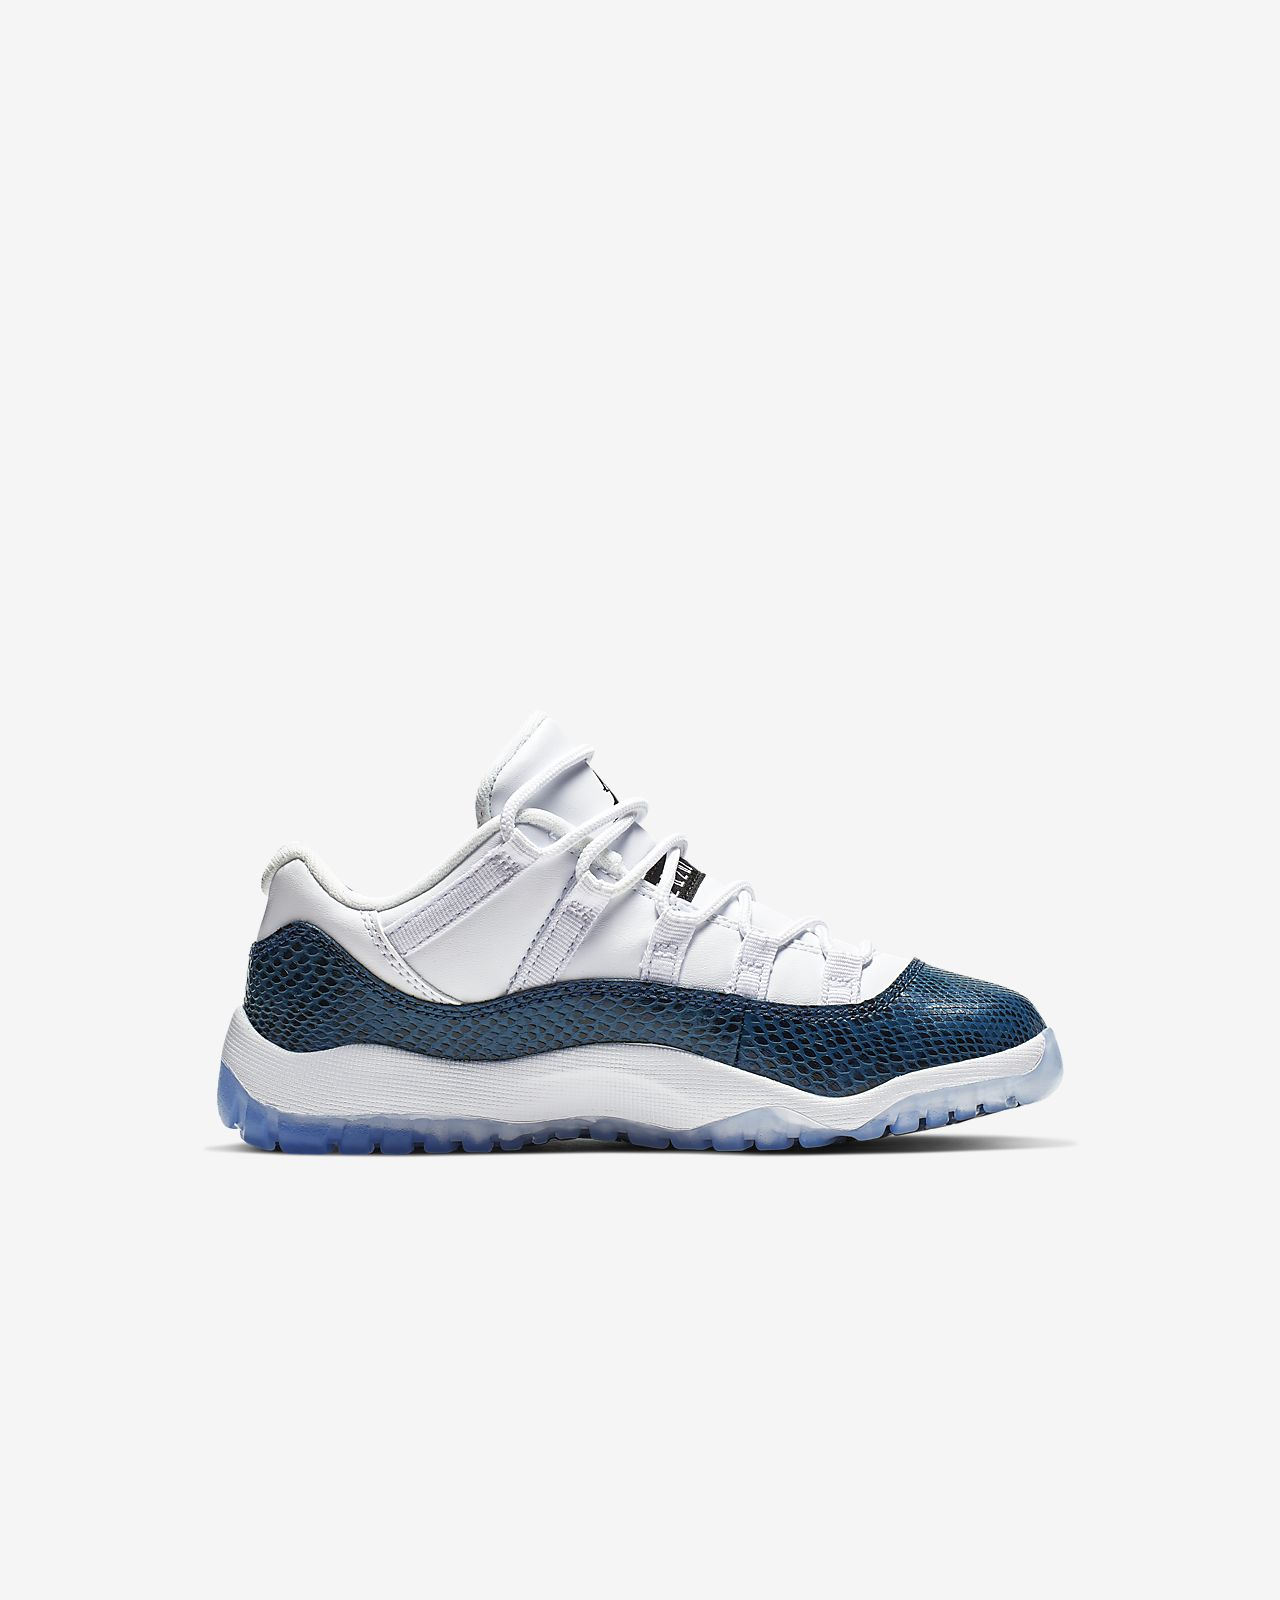 reputable site 4281c a2cbd Jordan 11 Retro Low LE